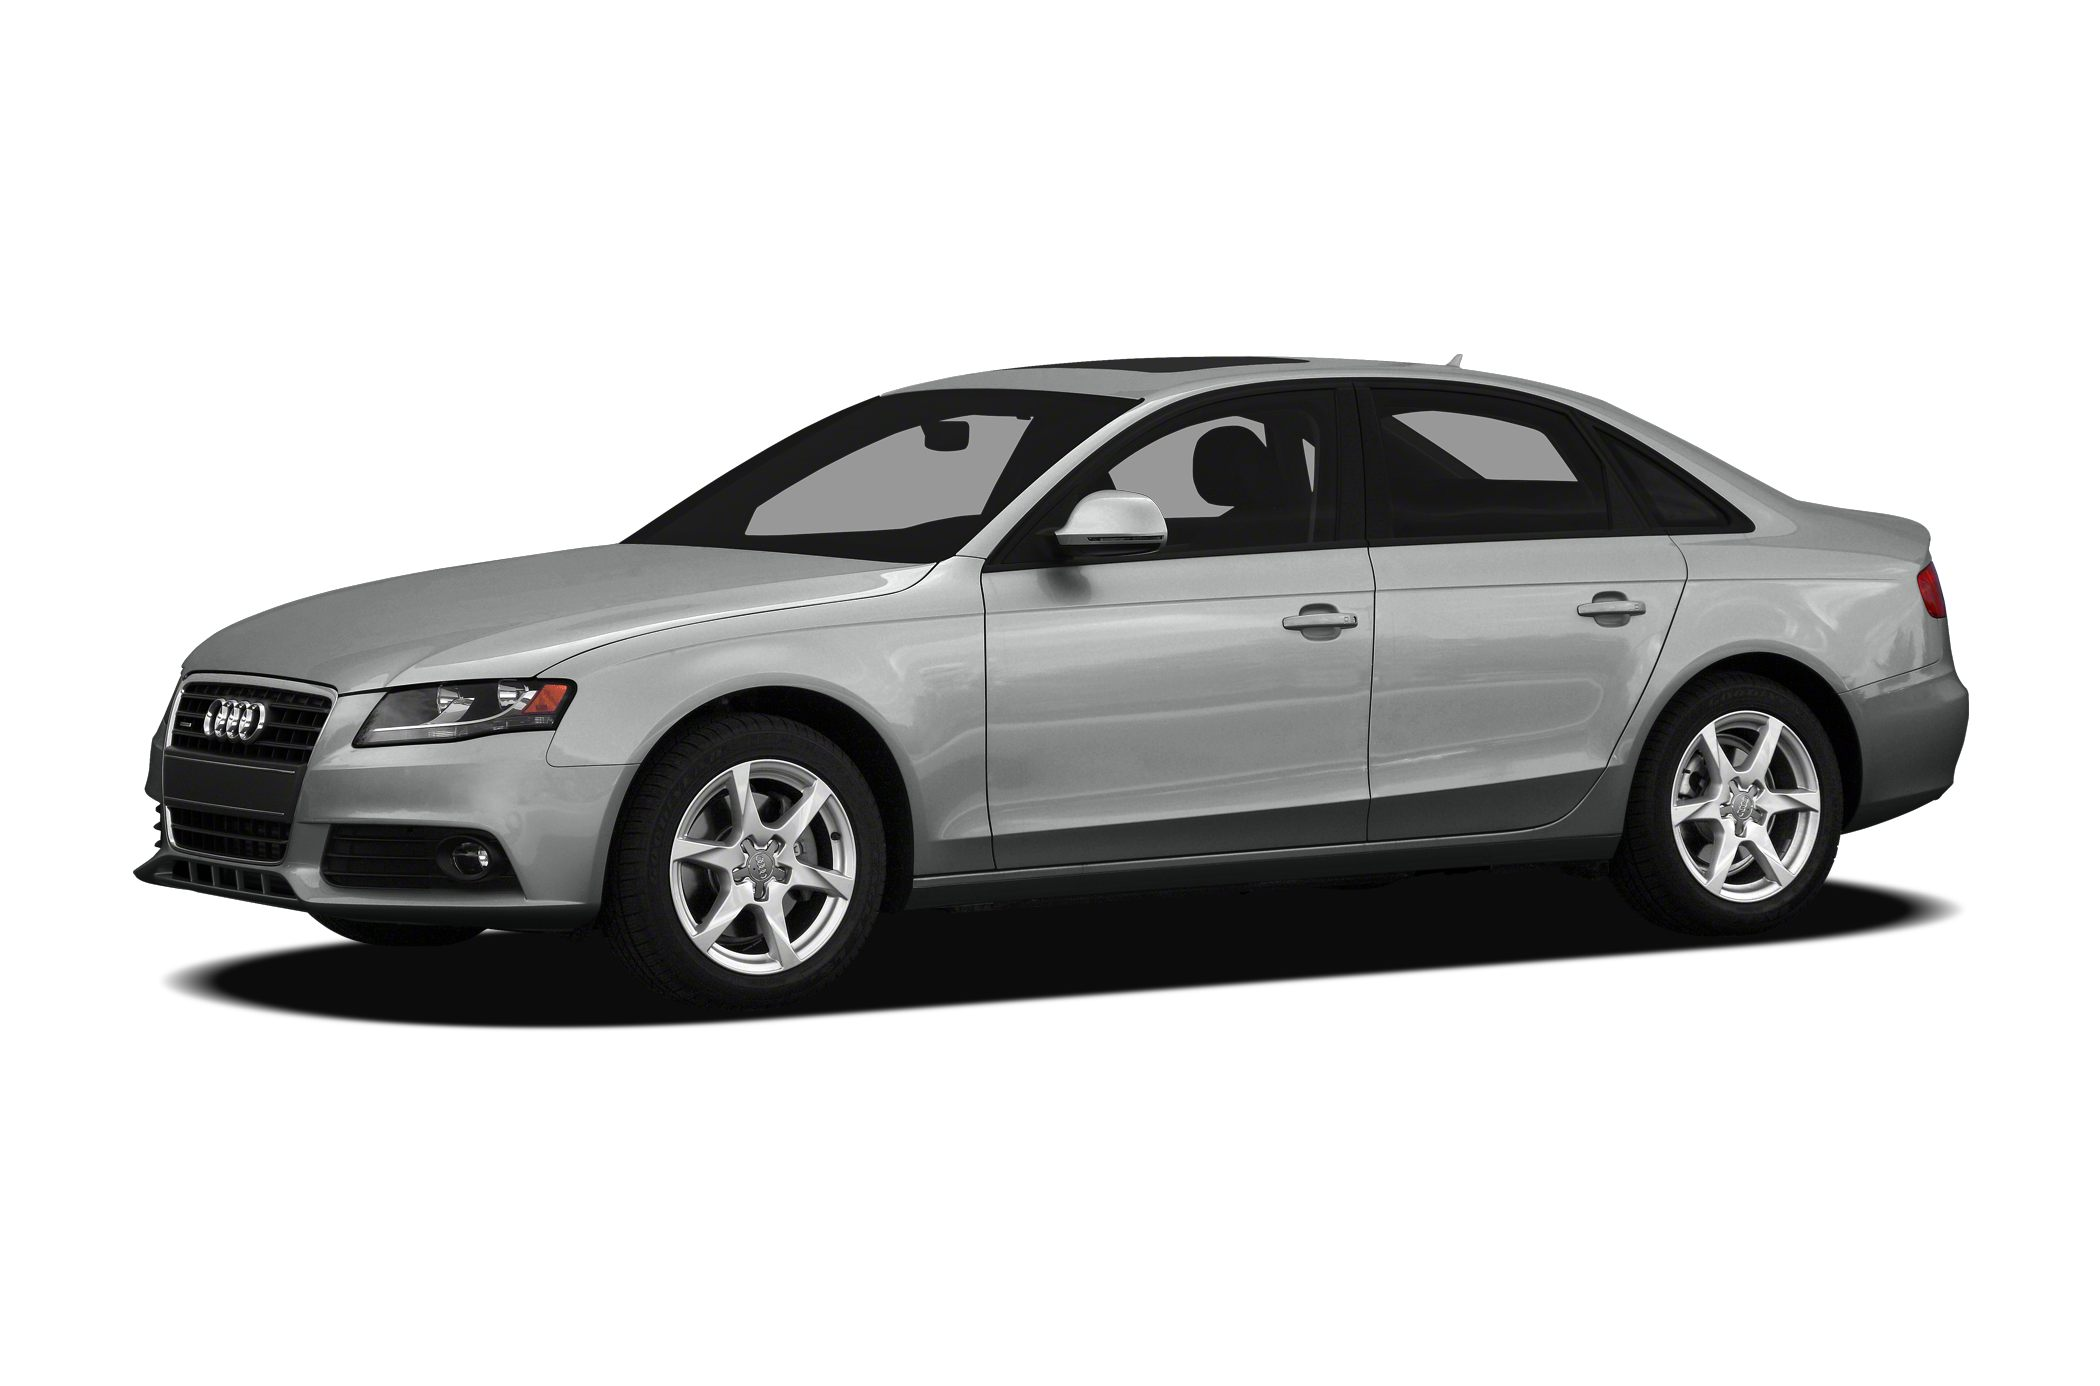 2012 Audi A4 2.0T Premium Sedan for sale in Durham for $24,000 with 35,172 miles